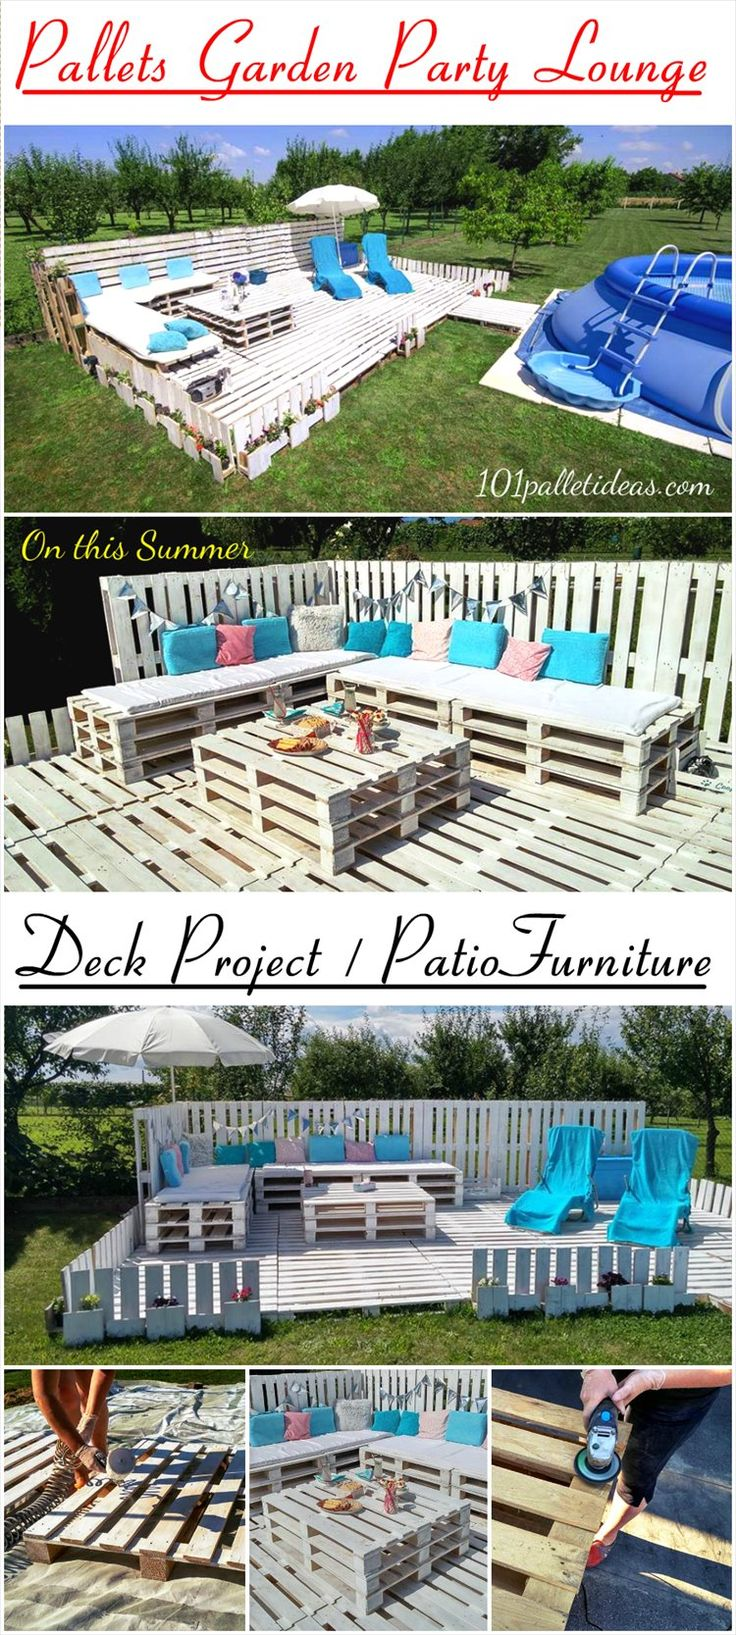 Double up your #outdoor fun with whole #pallets only, no cuttings are involved and no higher experience need for this project ! - Pallets #Garden Party Lounge Projects | 101 Pallet Ideas